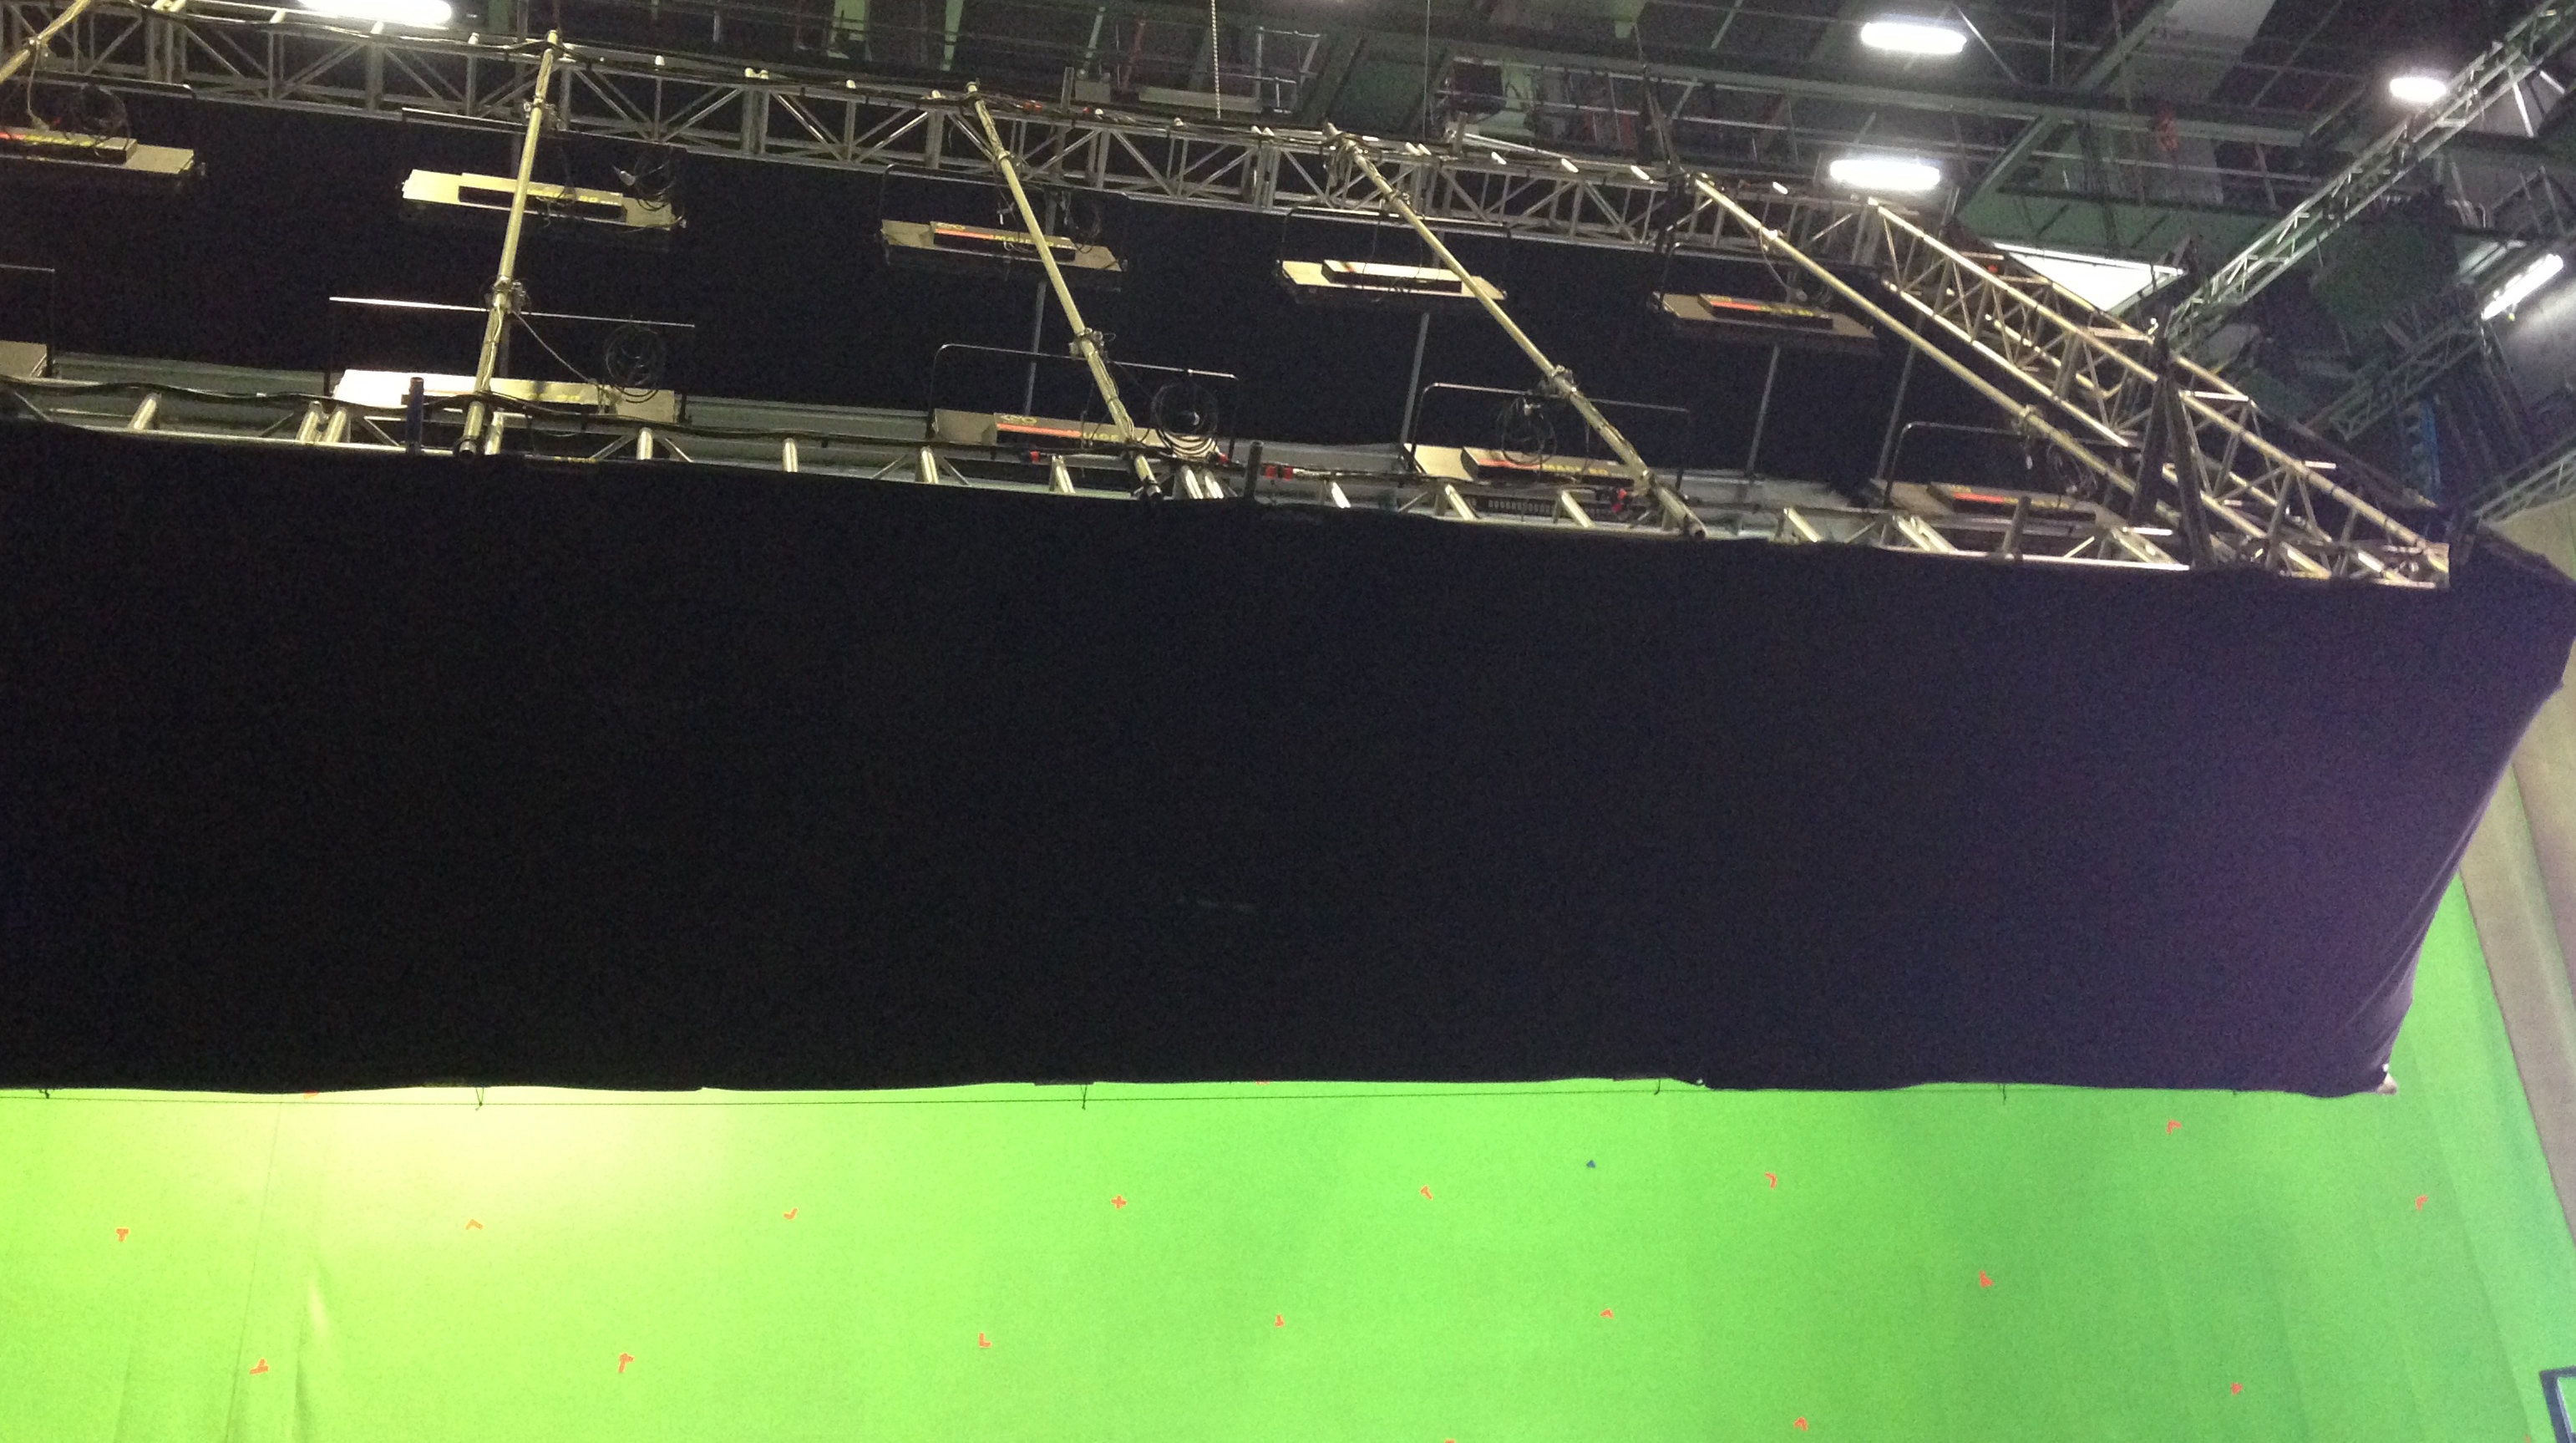 Retractable 130' x 30' Green Screen with light box, used on San Andreas